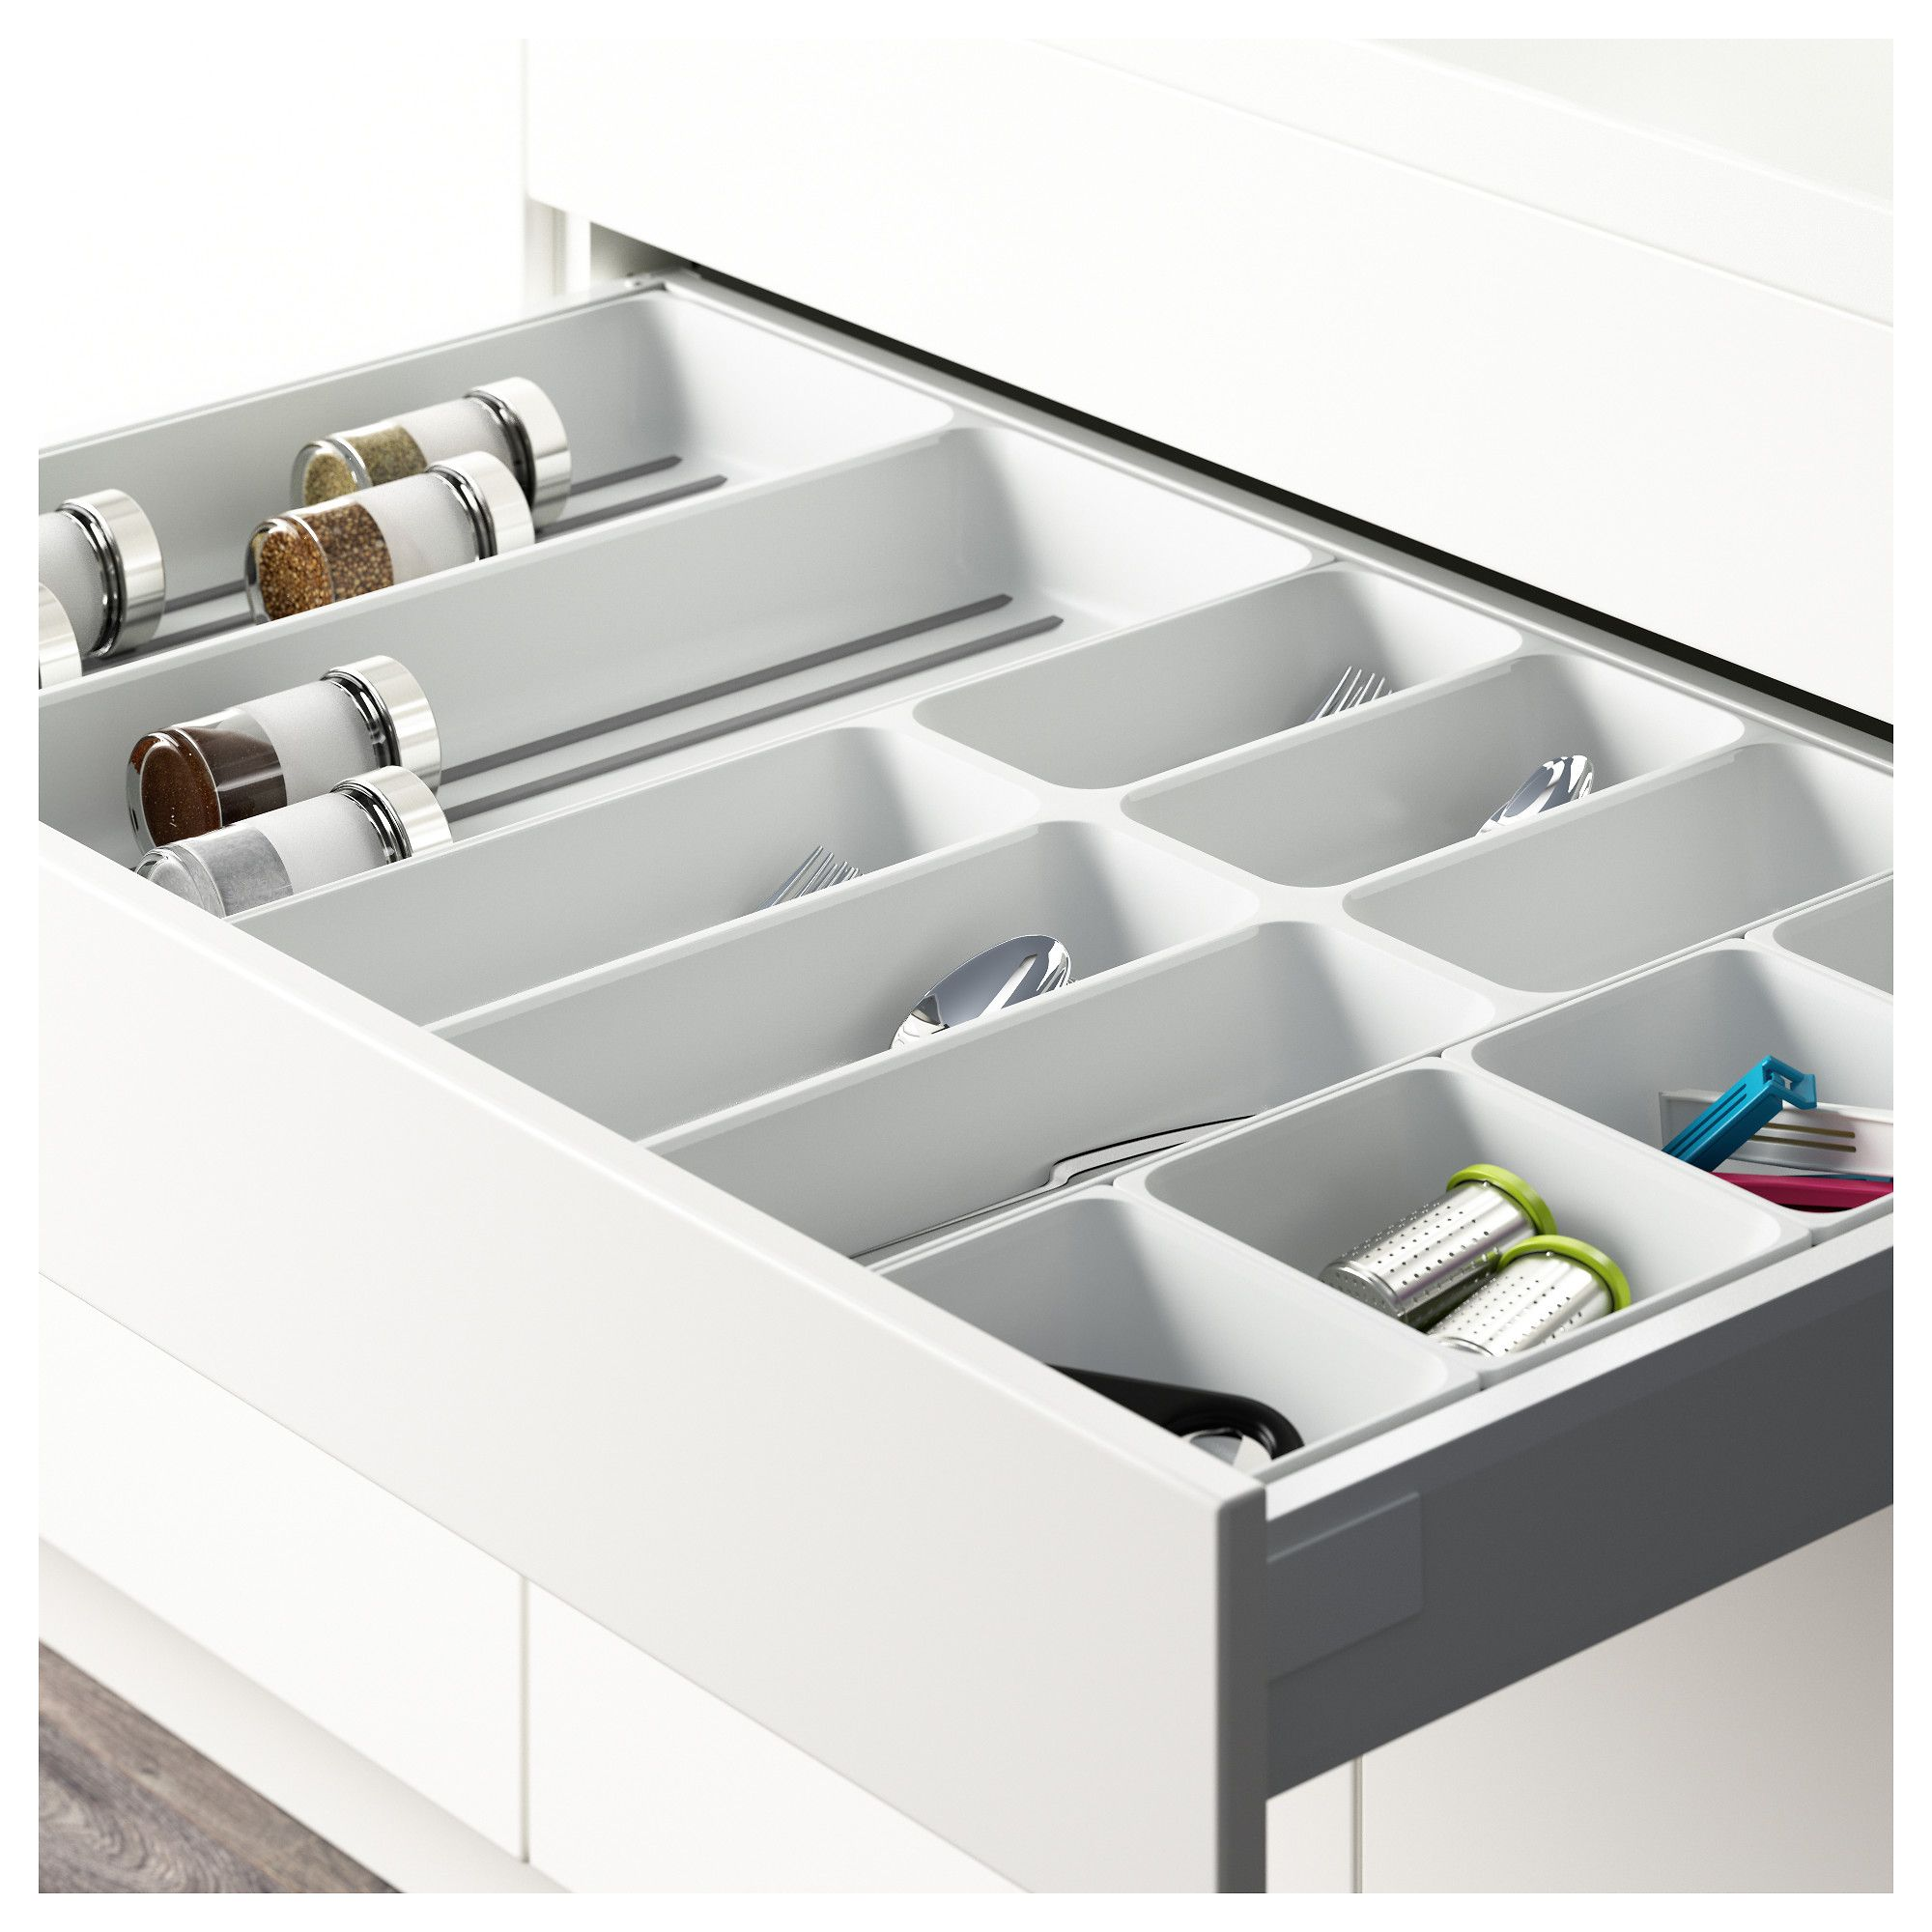 Ladeverdeler Ikea Ikea Variera Flatware Tray White In 2019 Products Ikea